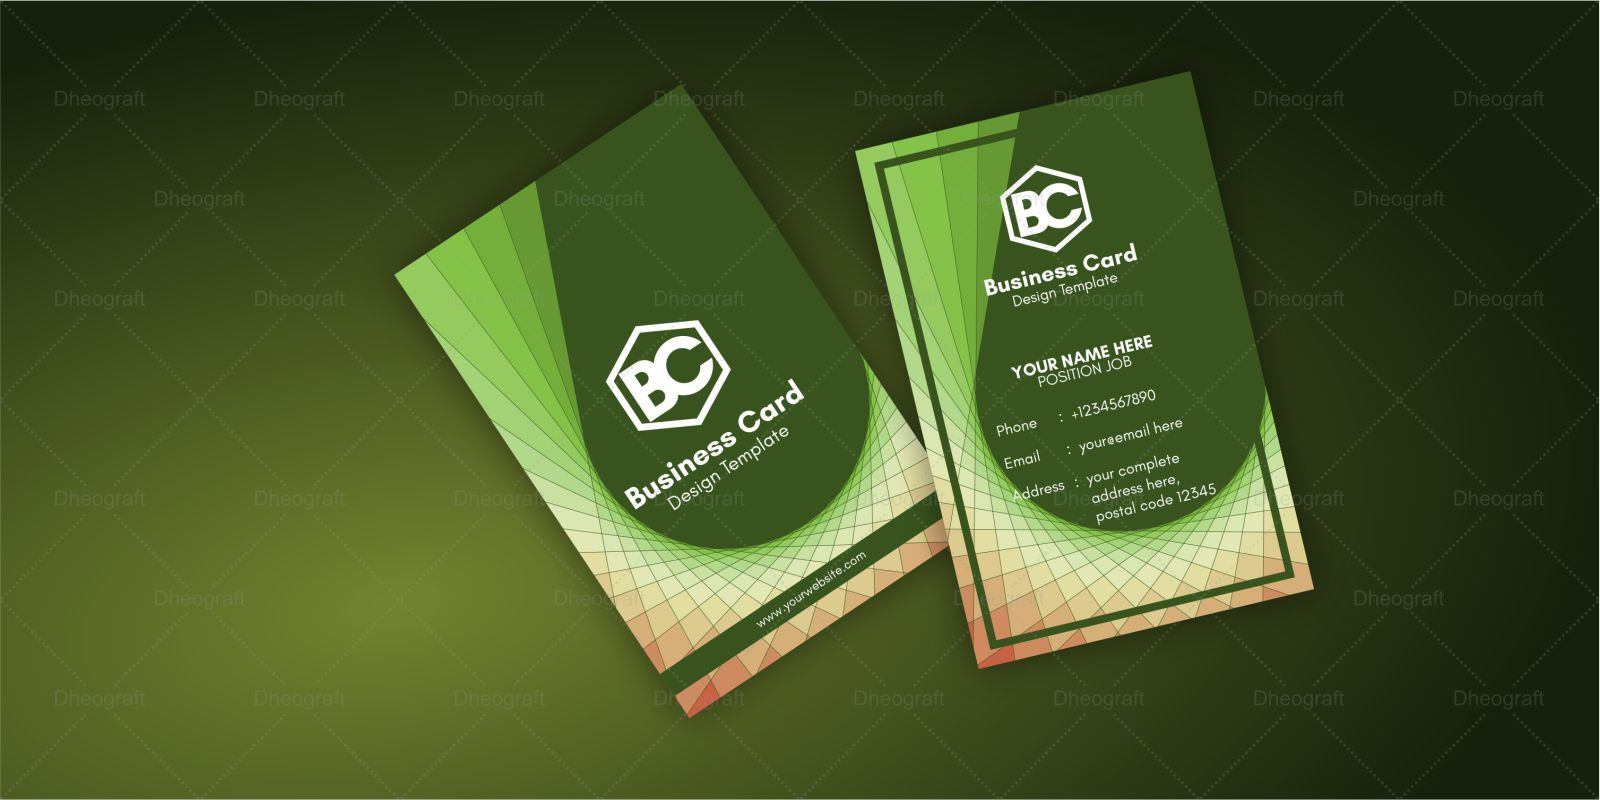 Geometric Spiral Business Card Template Screenshot 2